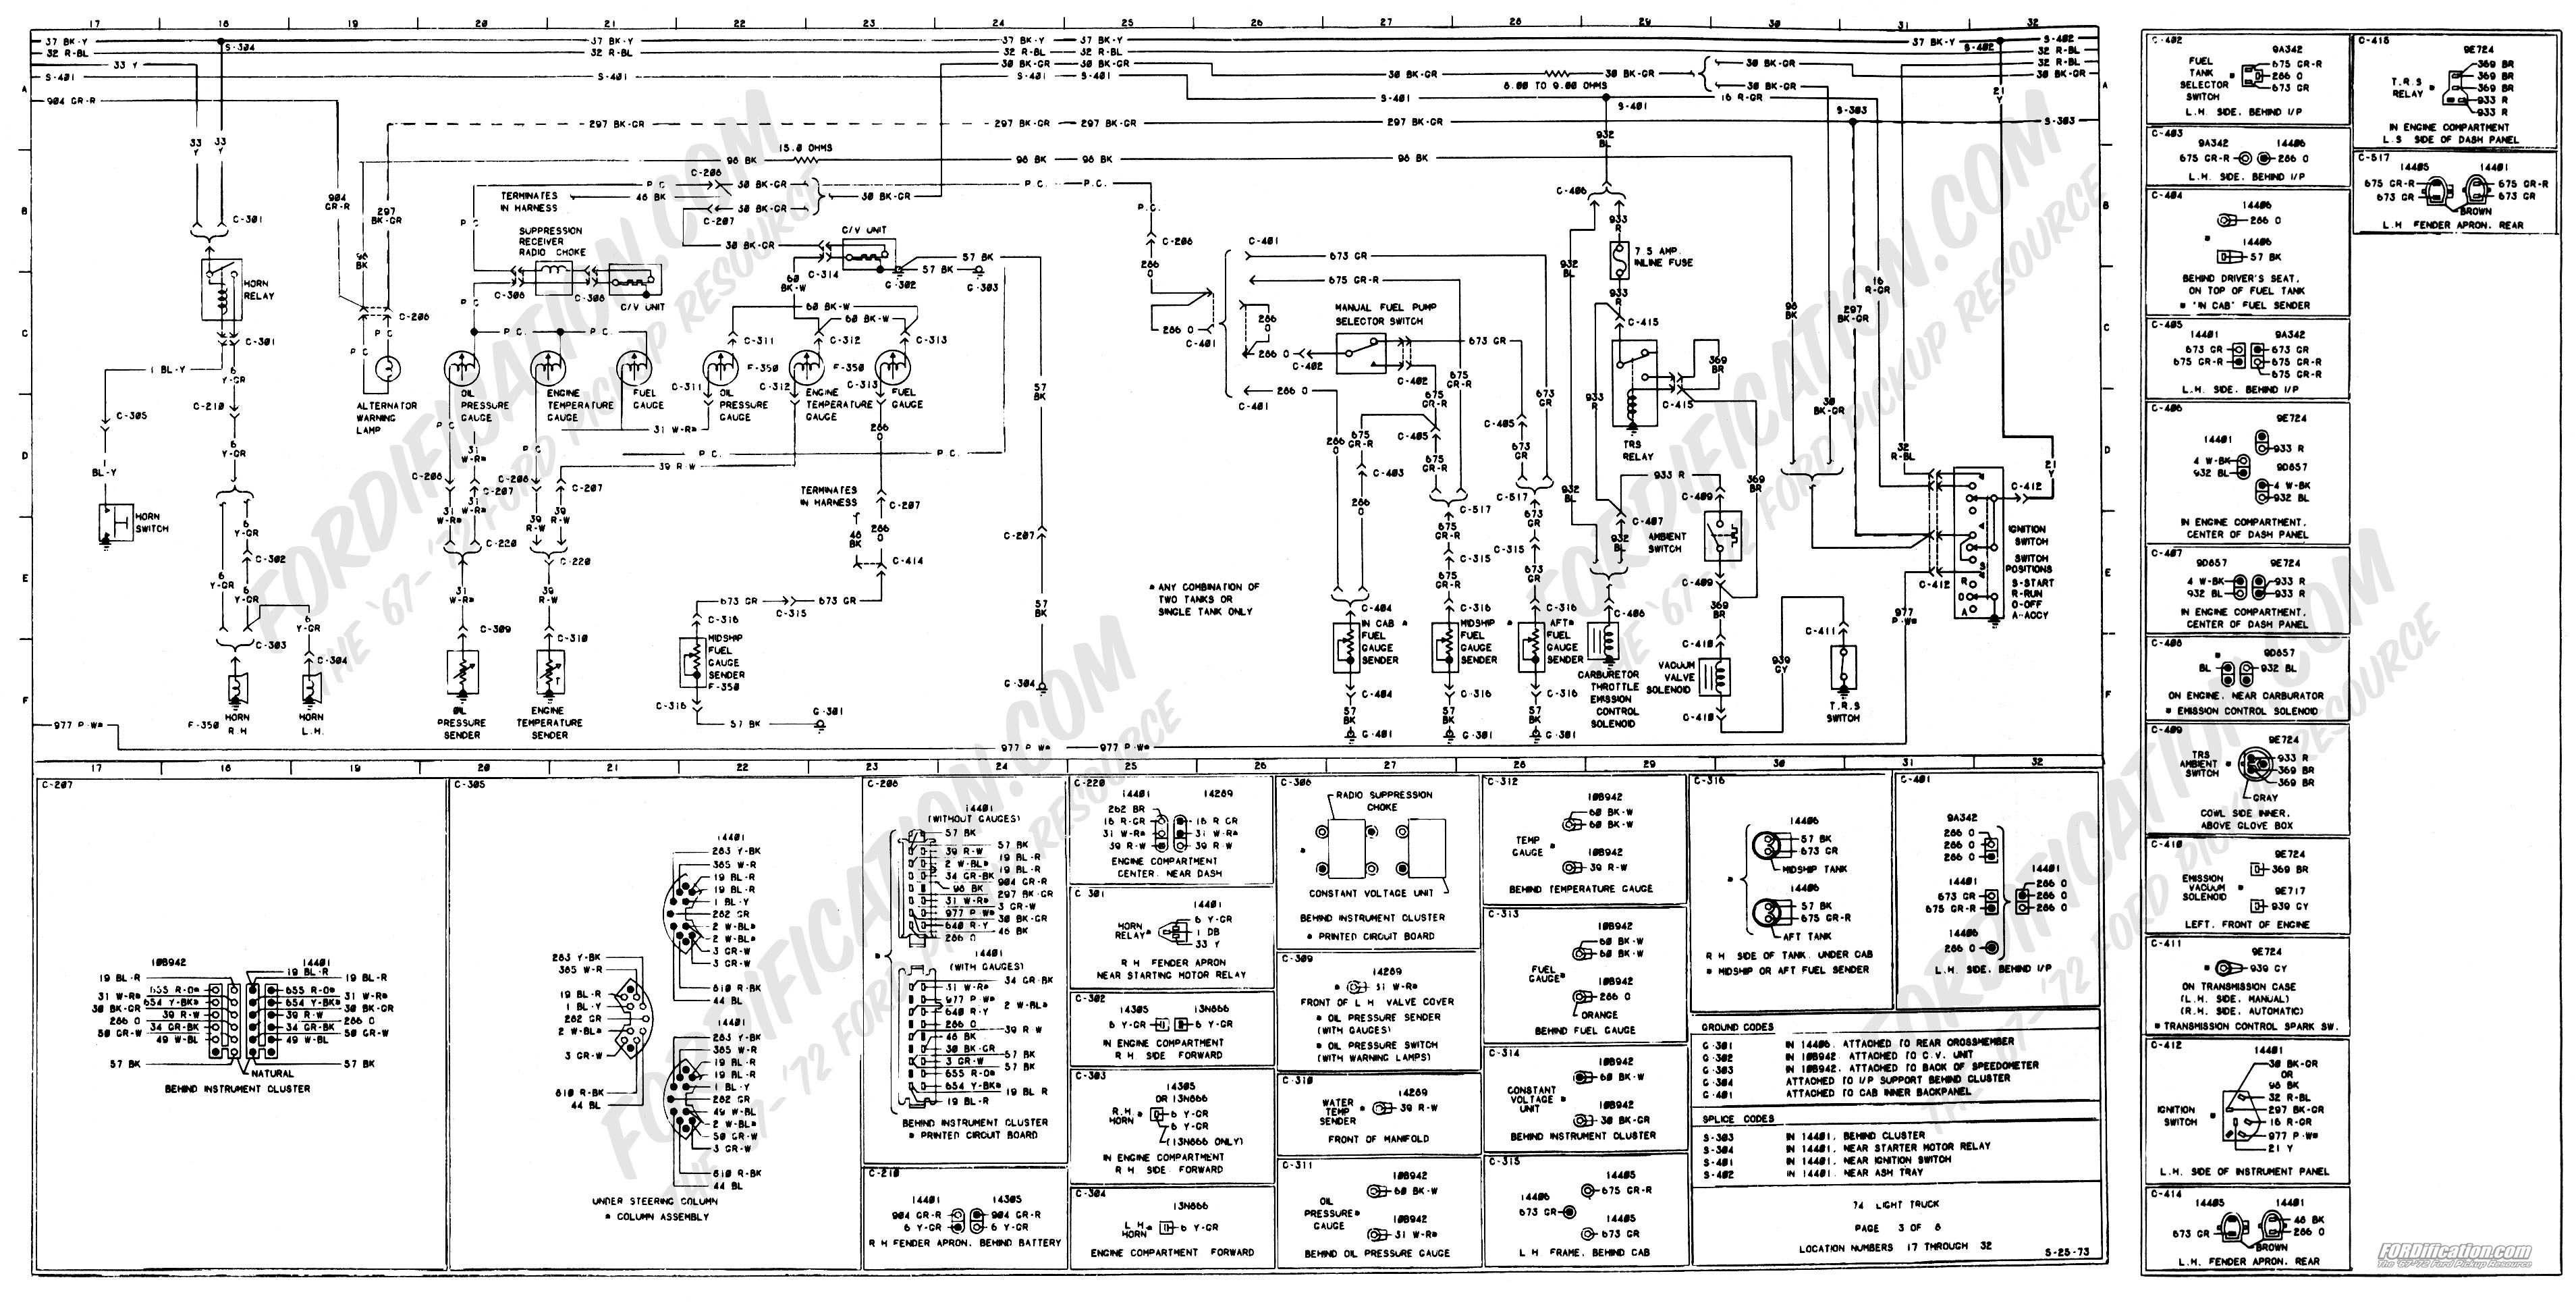 1997 ac wiring diagram 1997 honda accord ac wiring diagram 1973 1979 ford truck wiring diagrams amp schematics